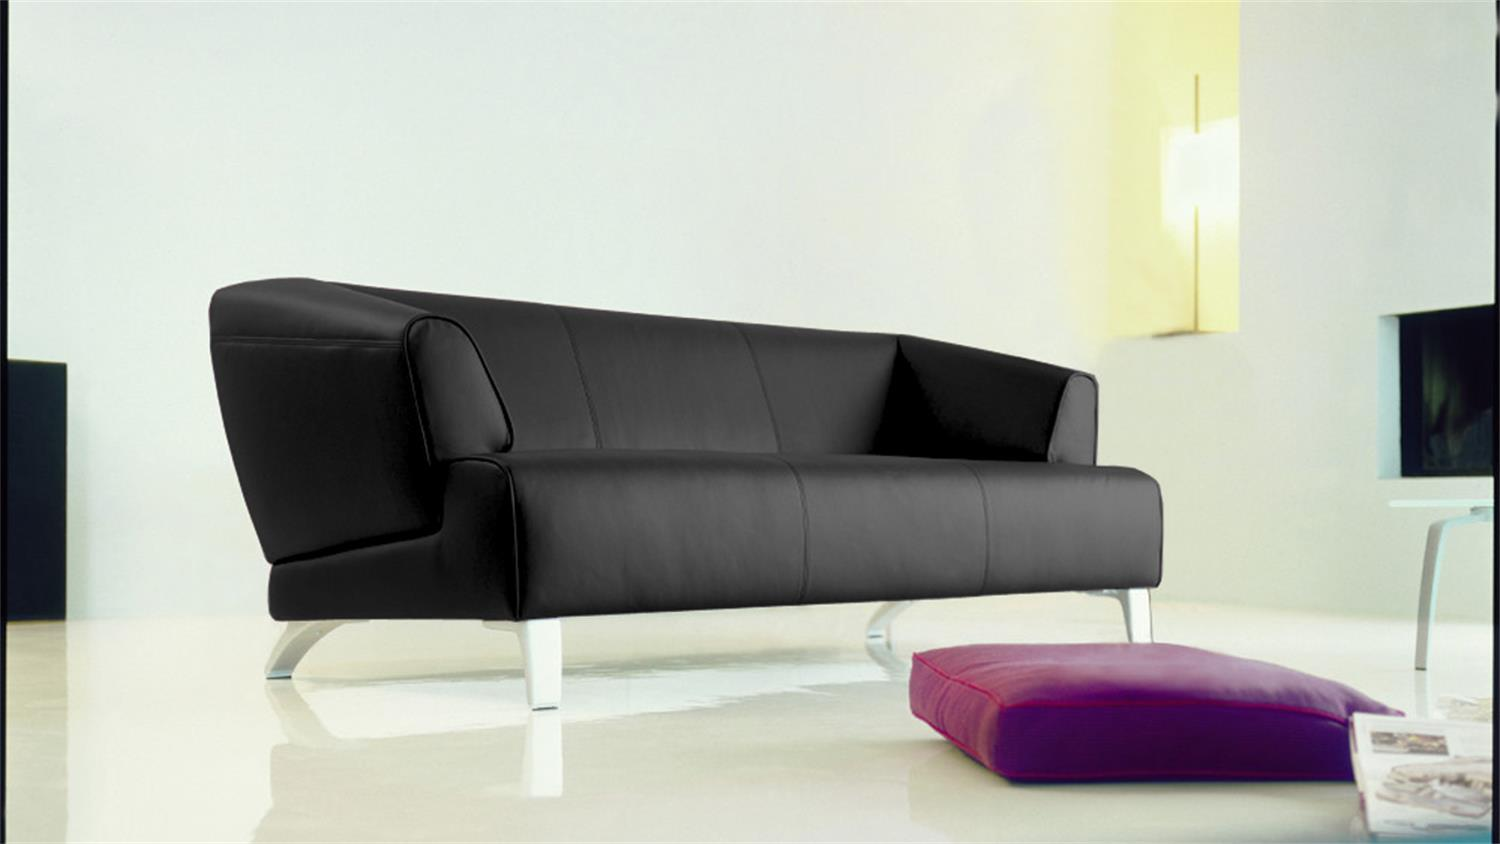 Rolf Benz Sofa Rolf Benz 50 Leather Sofa By Rolf Benz